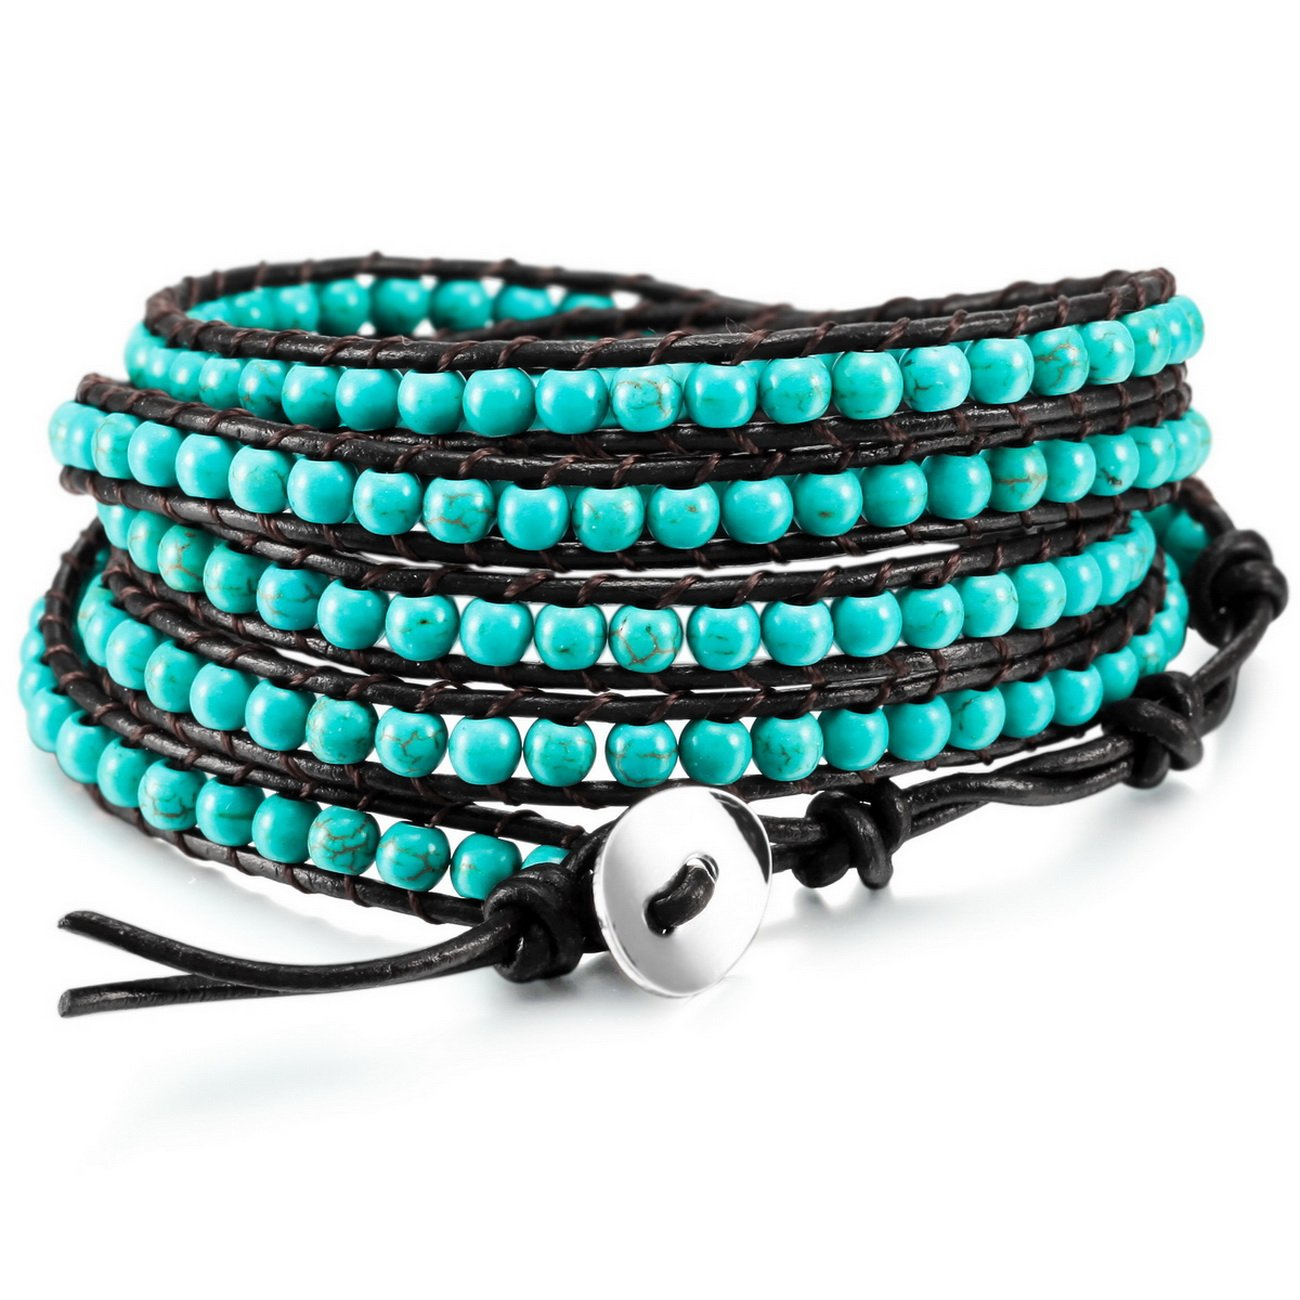 MOWOM Alloy Genuine Leather Bracelet Bangle Cuff Simulated Stone Rope Bead 5 Wrap Adjustable ca5020210